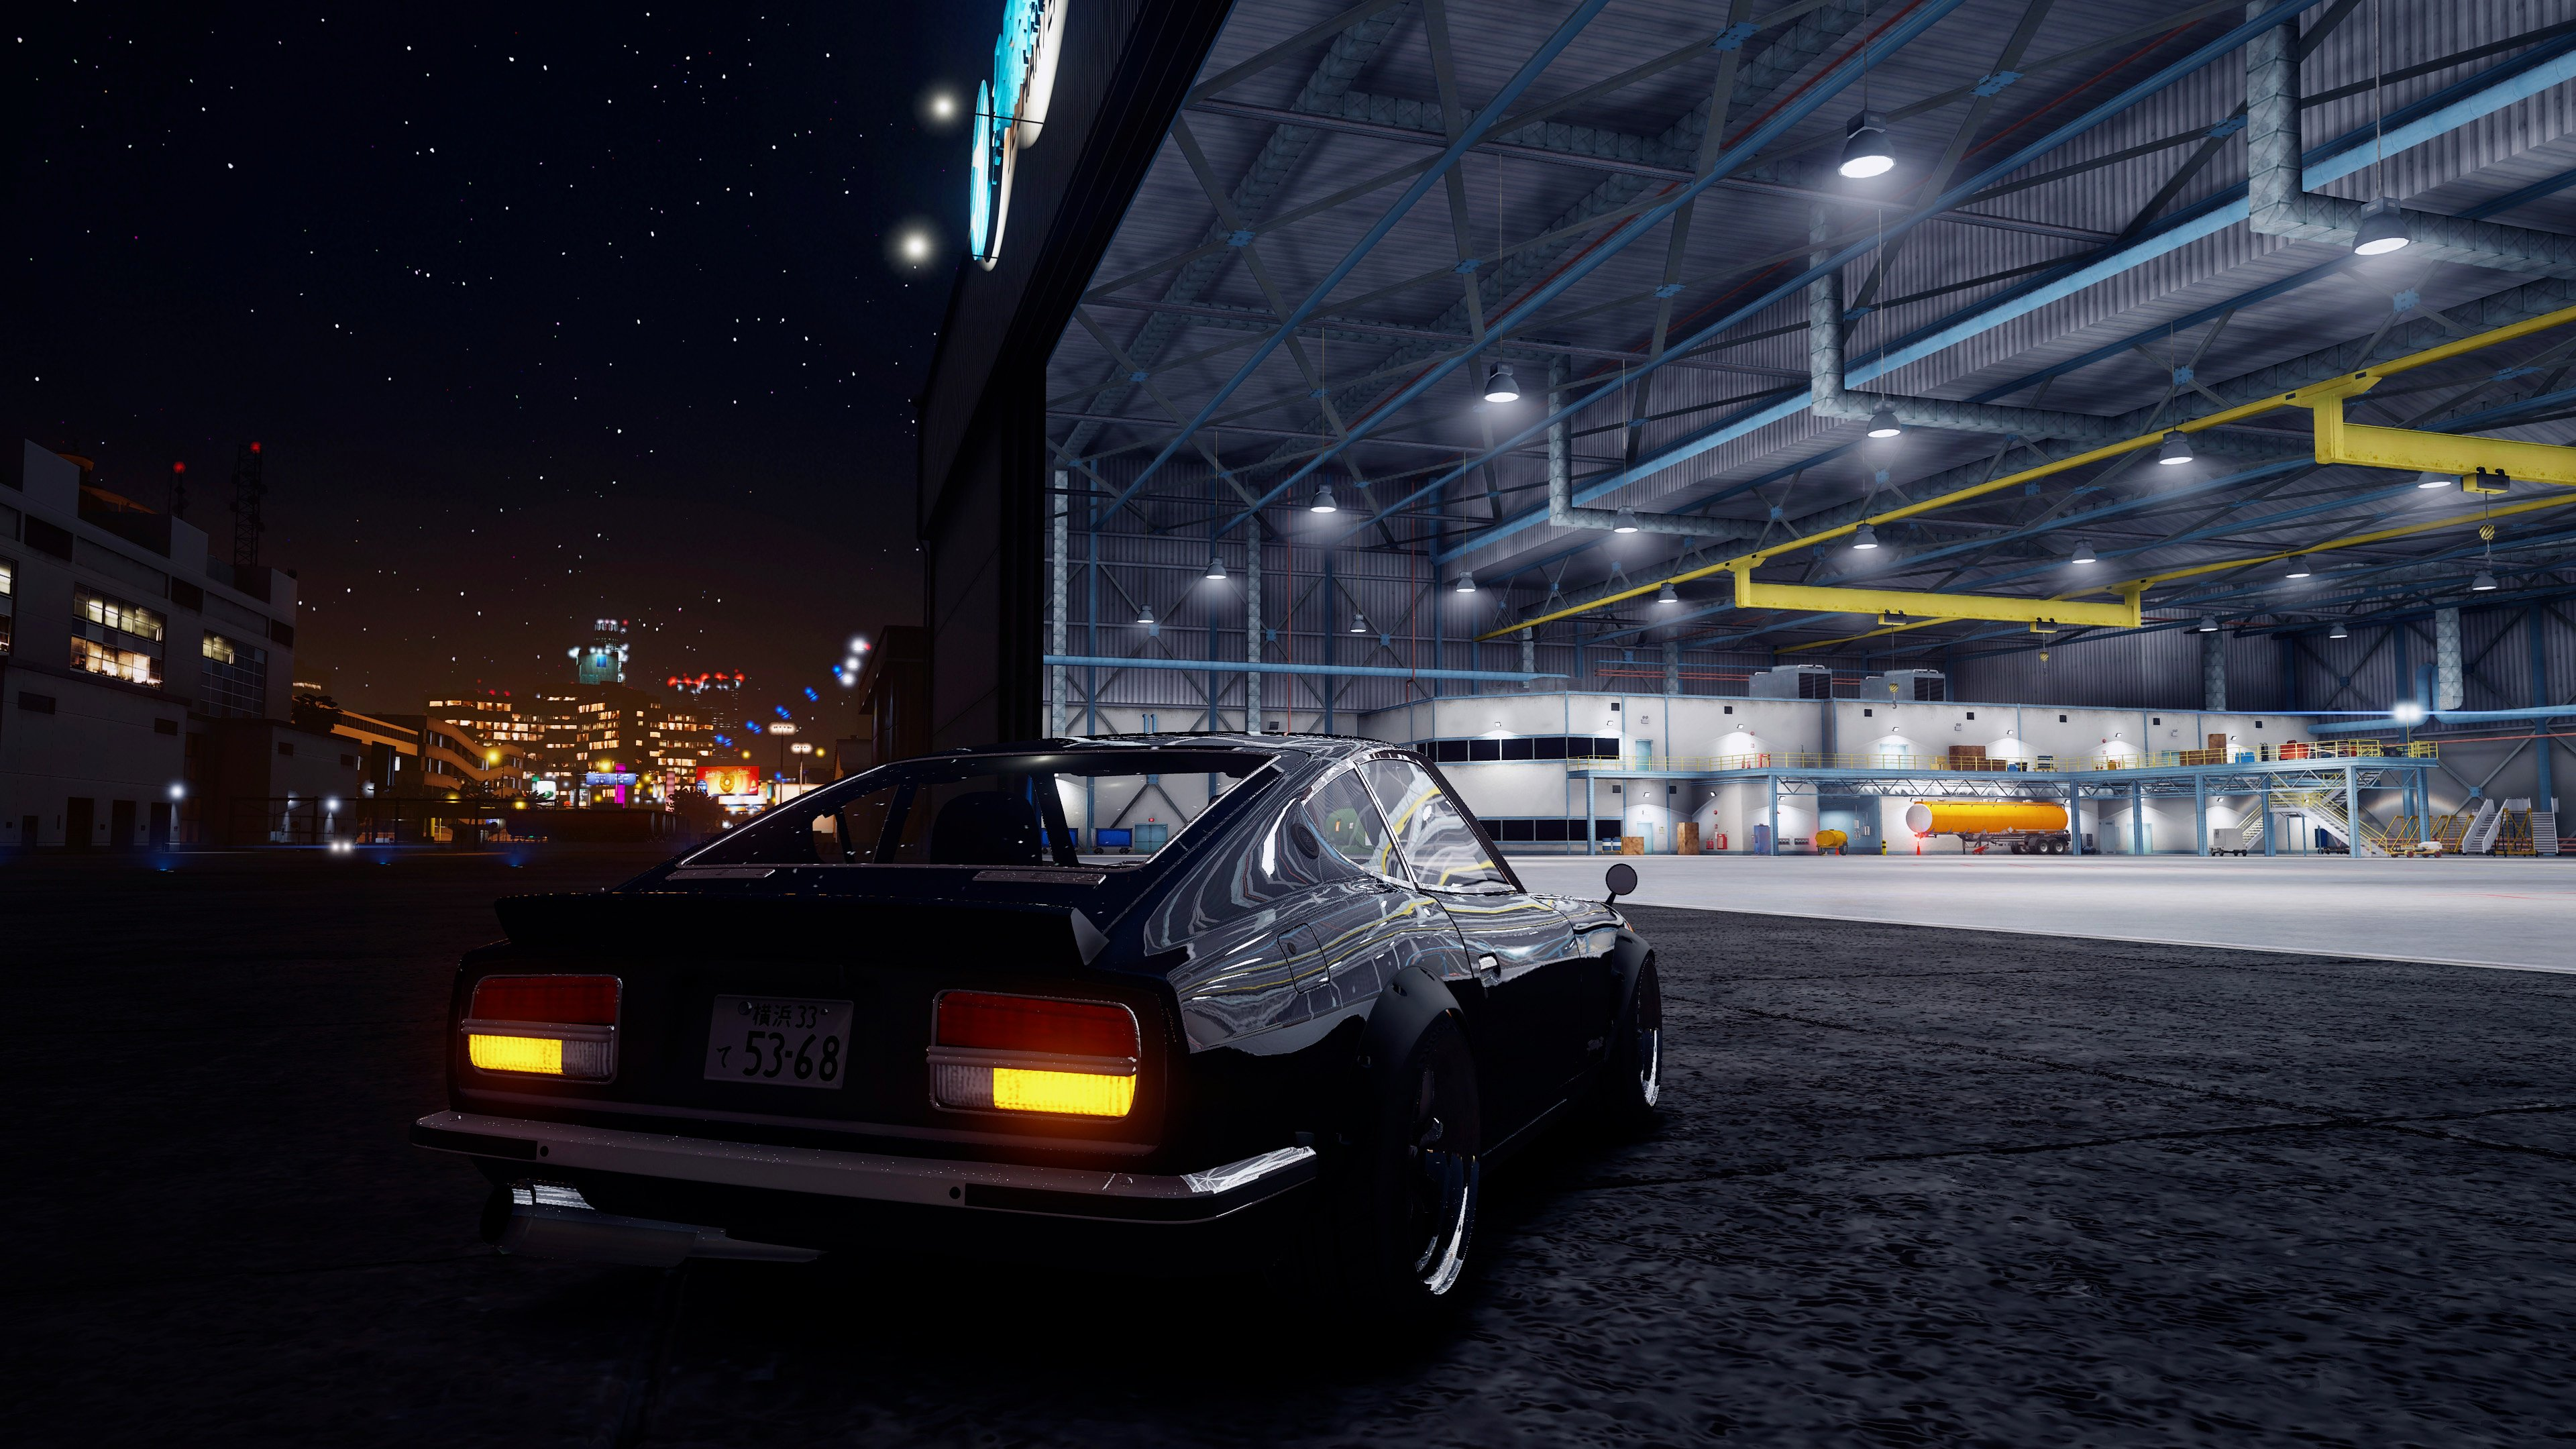 2560x1600 Grand Theft Auto V Mods Cars 2560x1600 Resolution